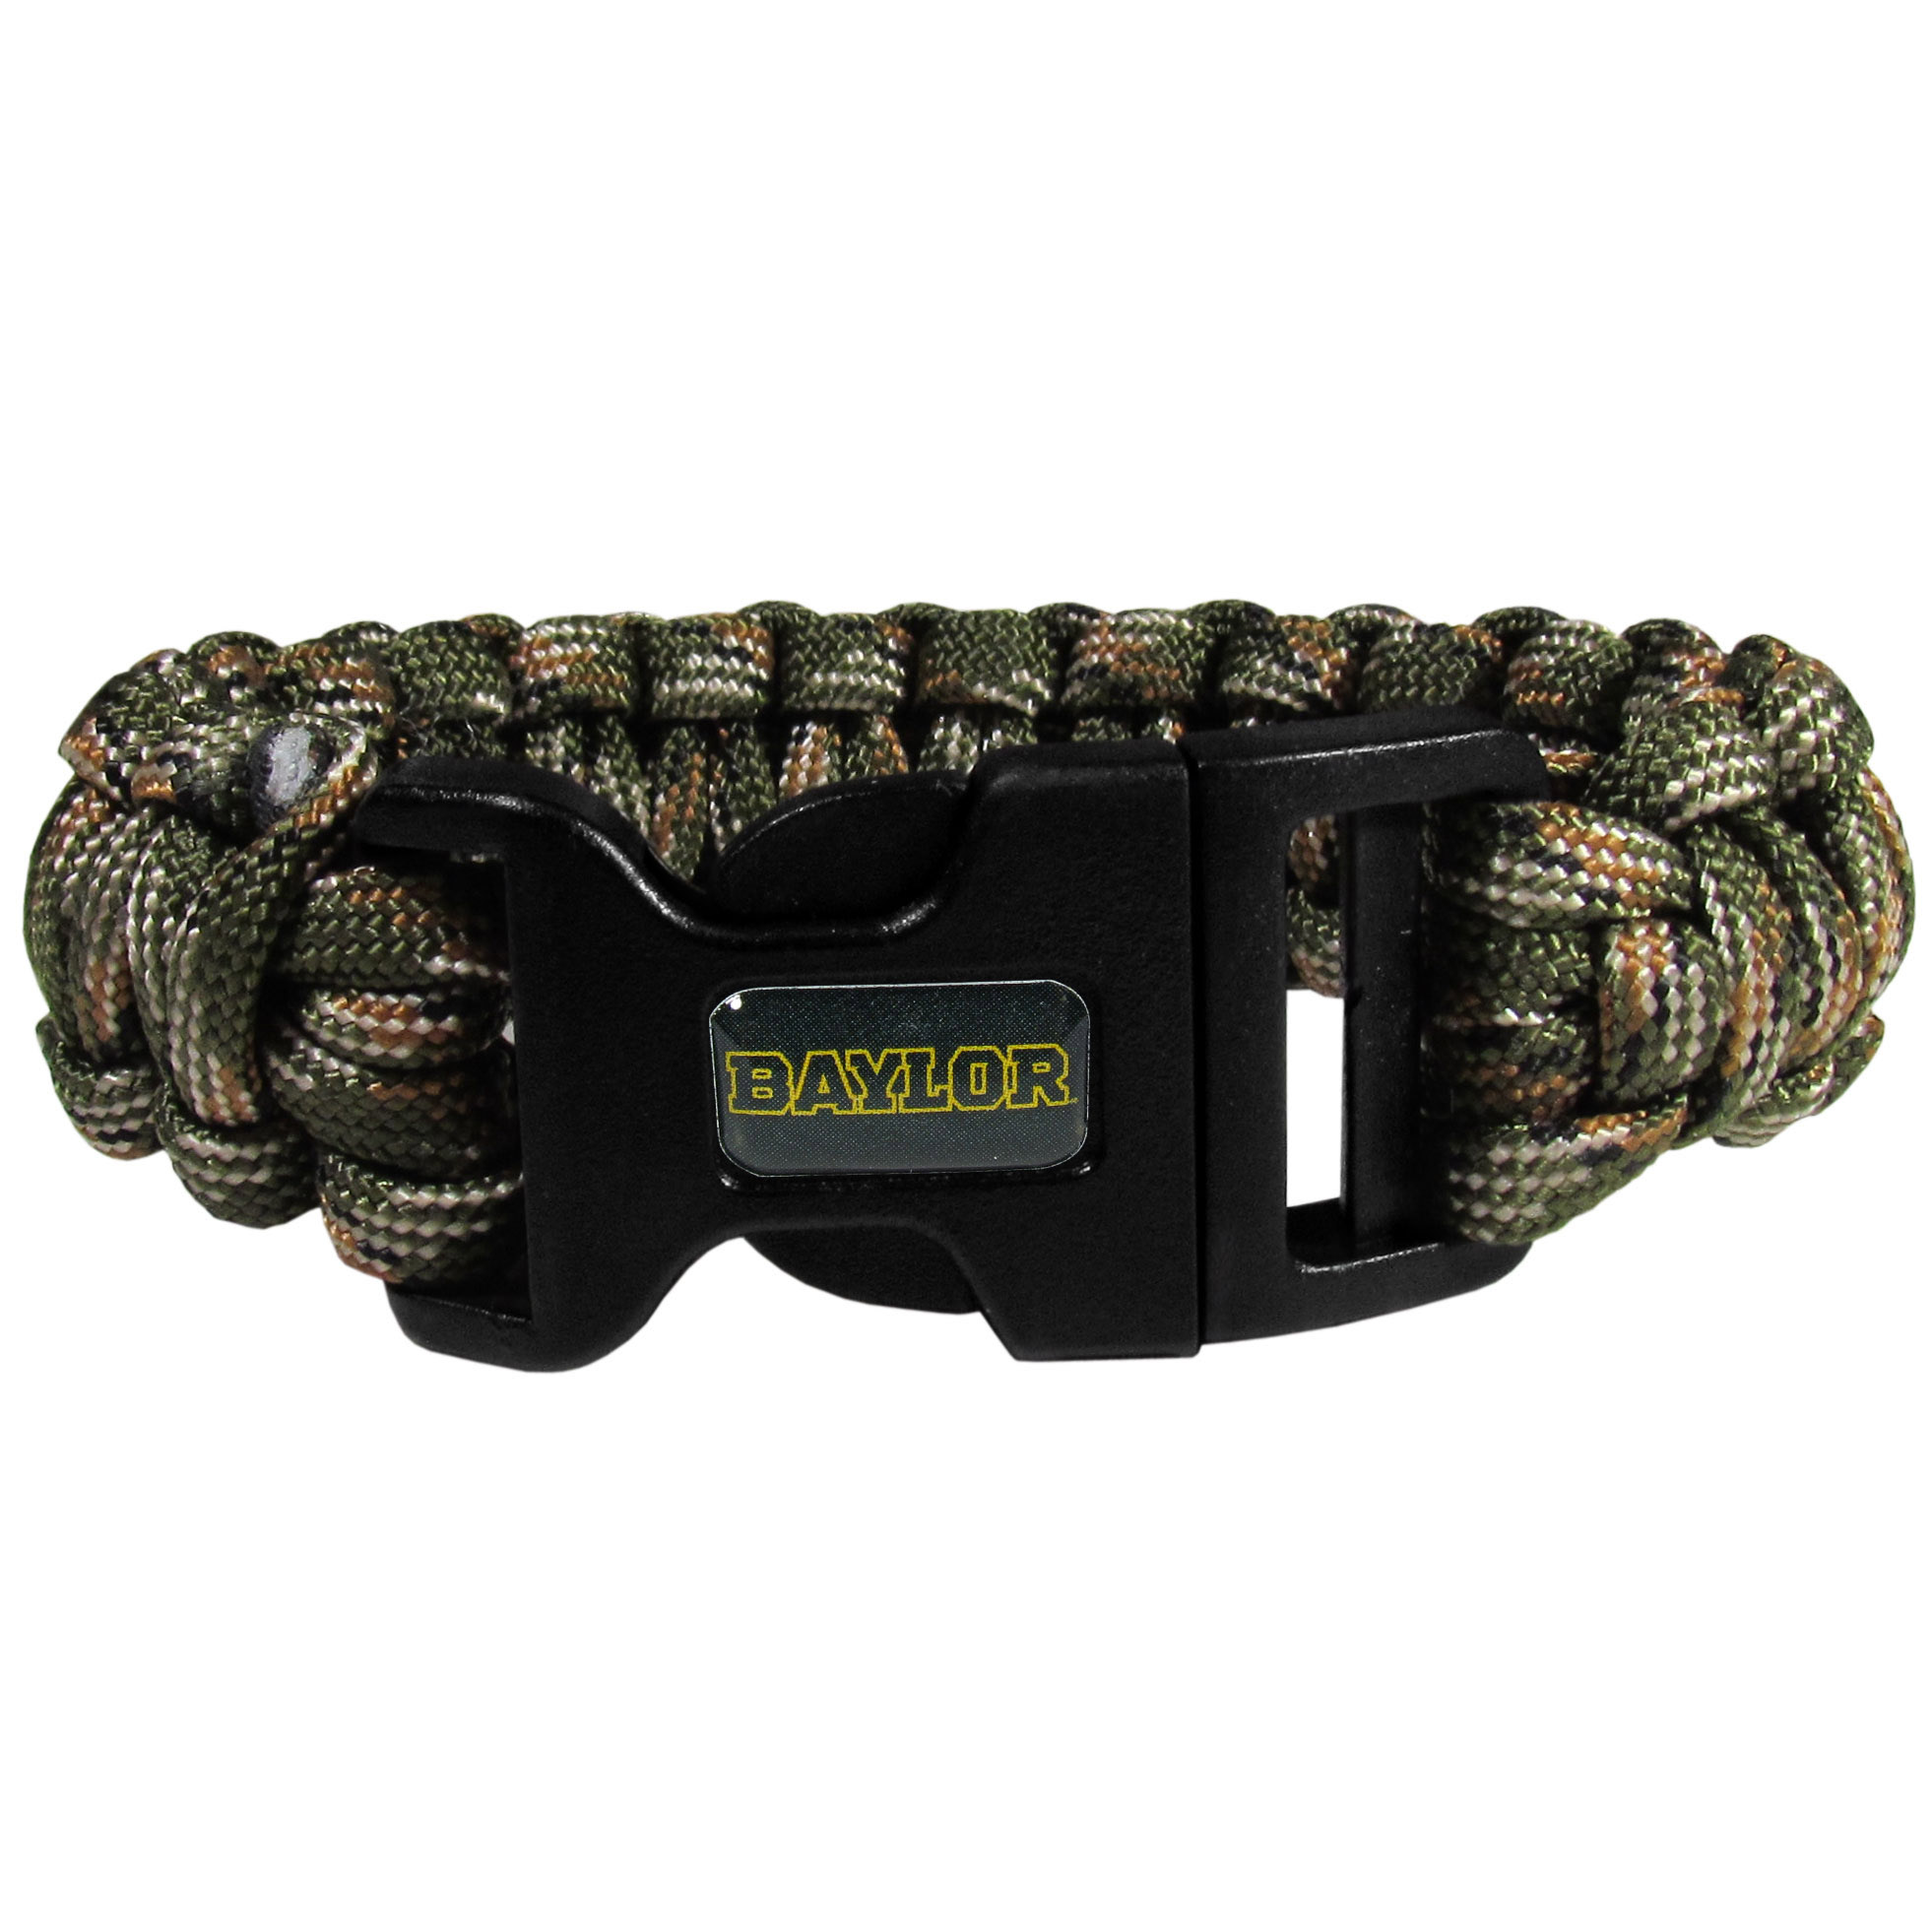 Baylor Bears Camo Survivor Bracelet - Our functional and fashionable  camo survivor bracelets contain 2 individual 300lb test paracord rated cords that are each 5 feet long. The camo cords can be pulled apart to be used in any number of emergencies and look great while worn. The bracelet features a team emblem on the clasp.